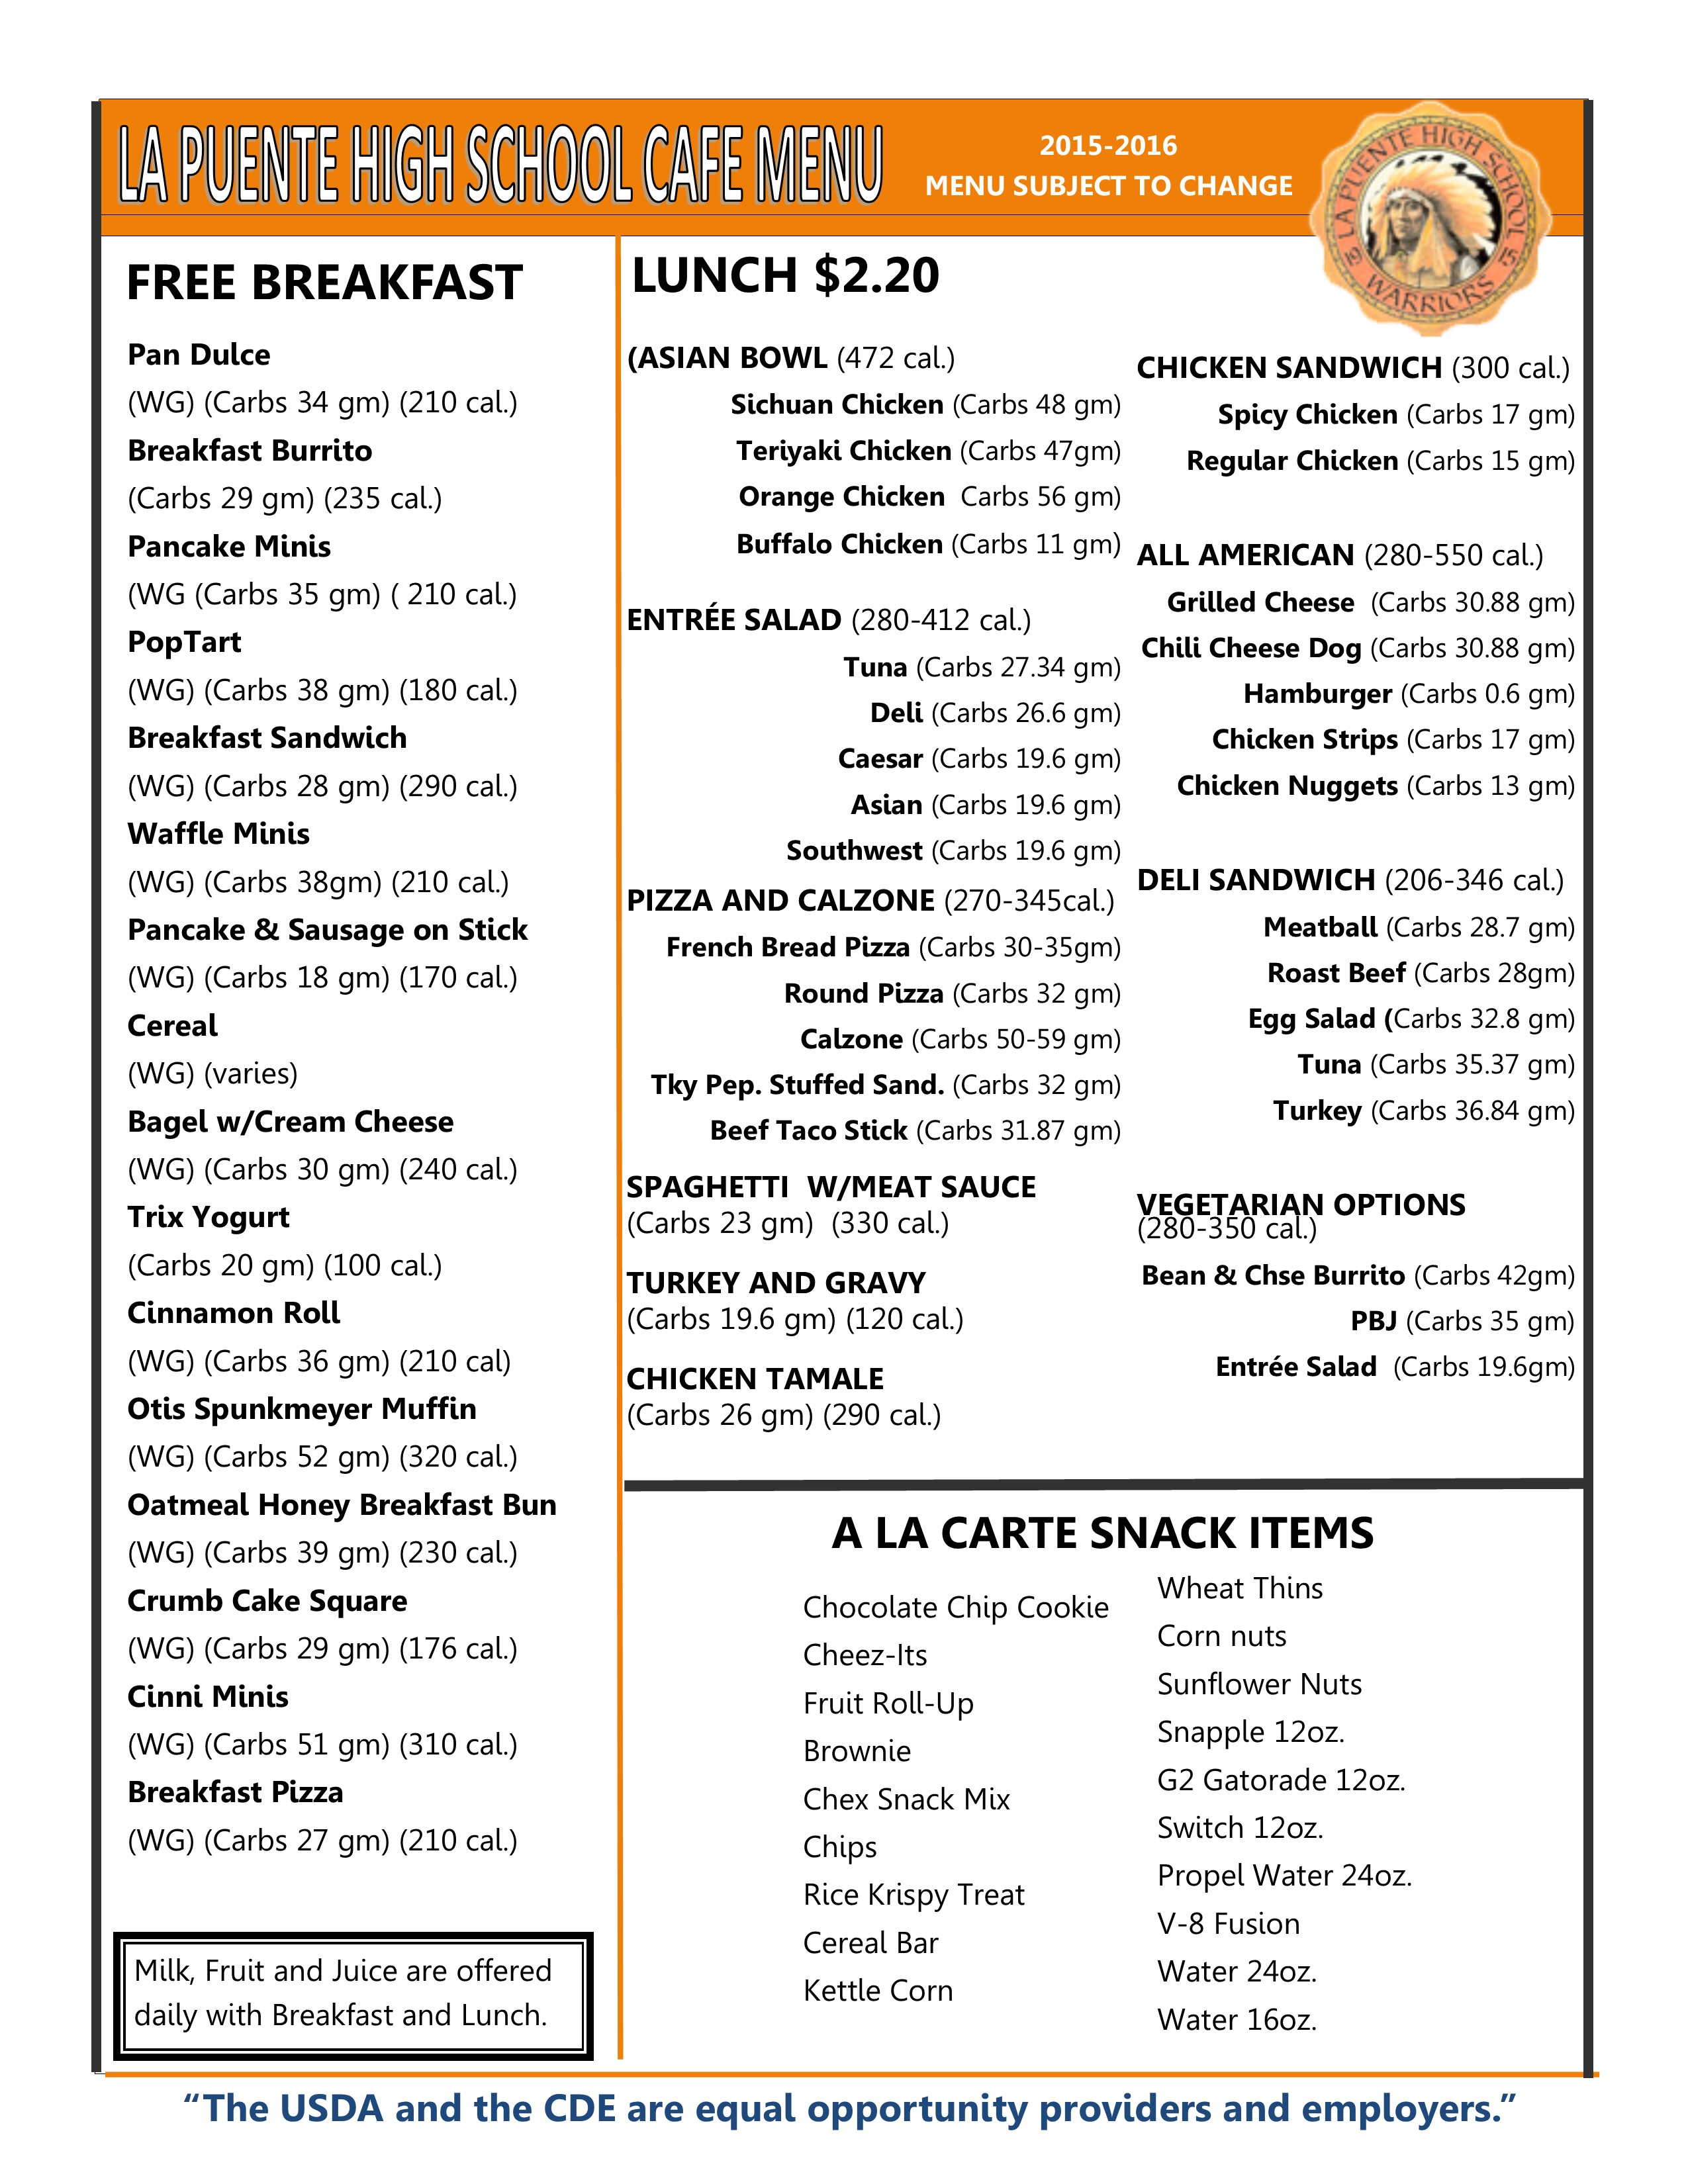 La Puente High School Menu.jpg